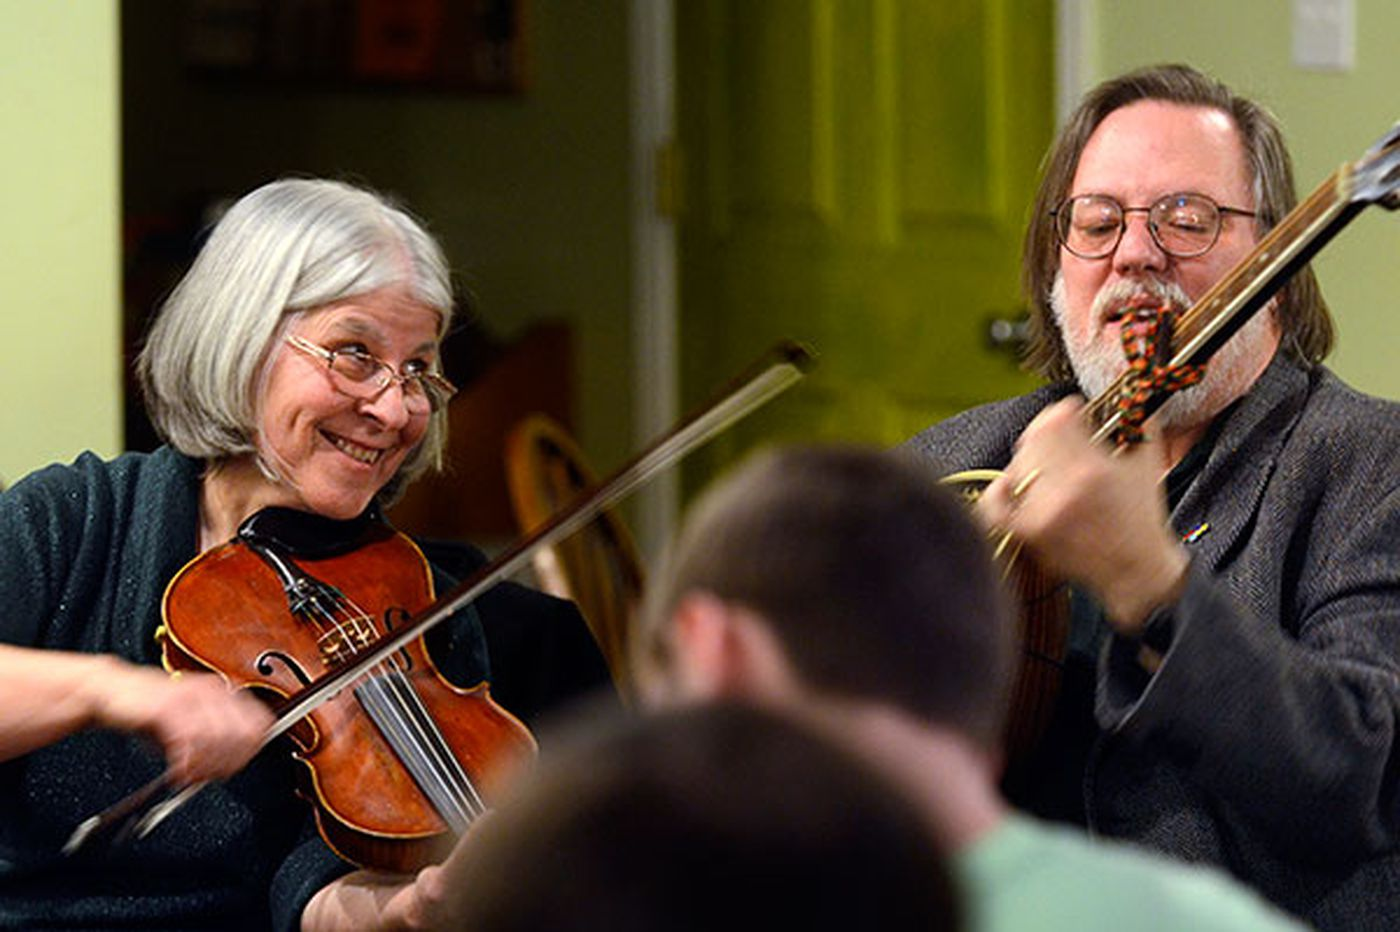 Keeping the spirit of Irish music alive in S. Jersey